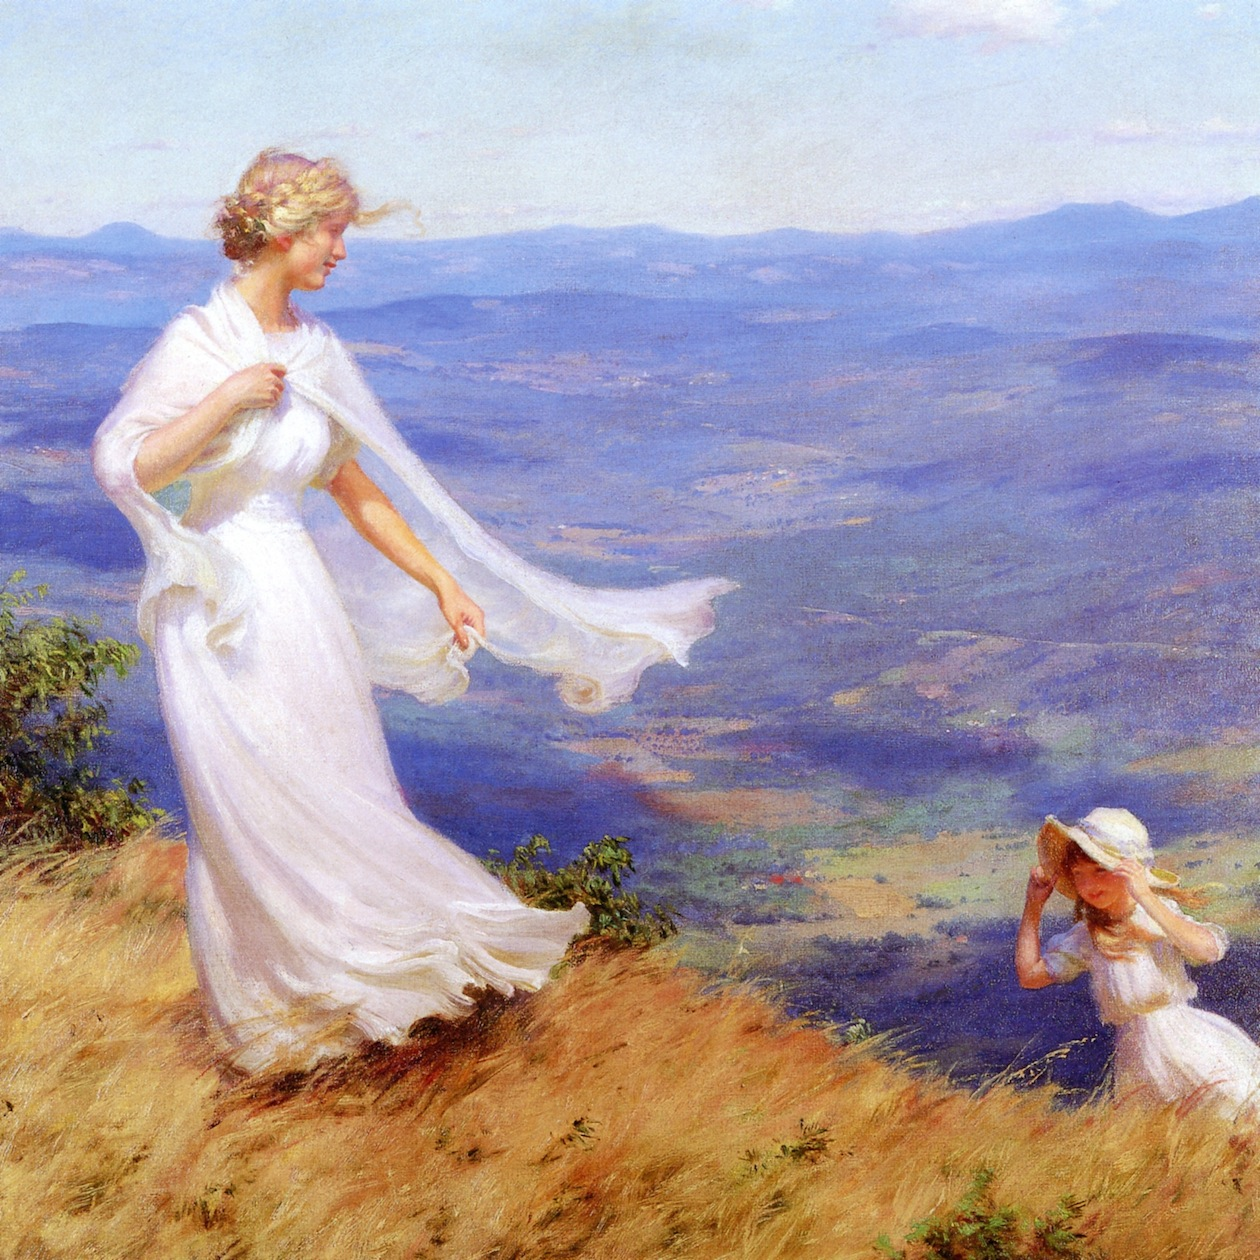 The West Wind by Charles Courtney Curran - 1918